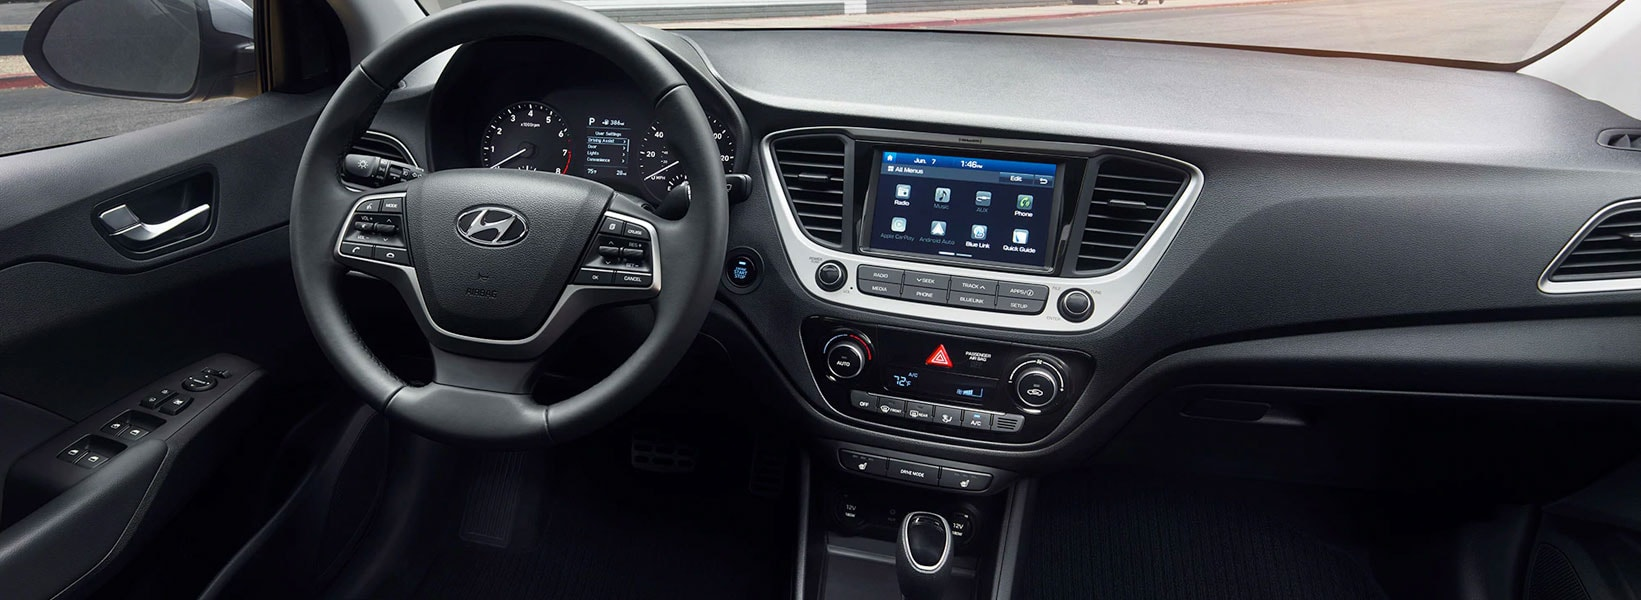 2019 Hyundai Accent Features Chicago IL